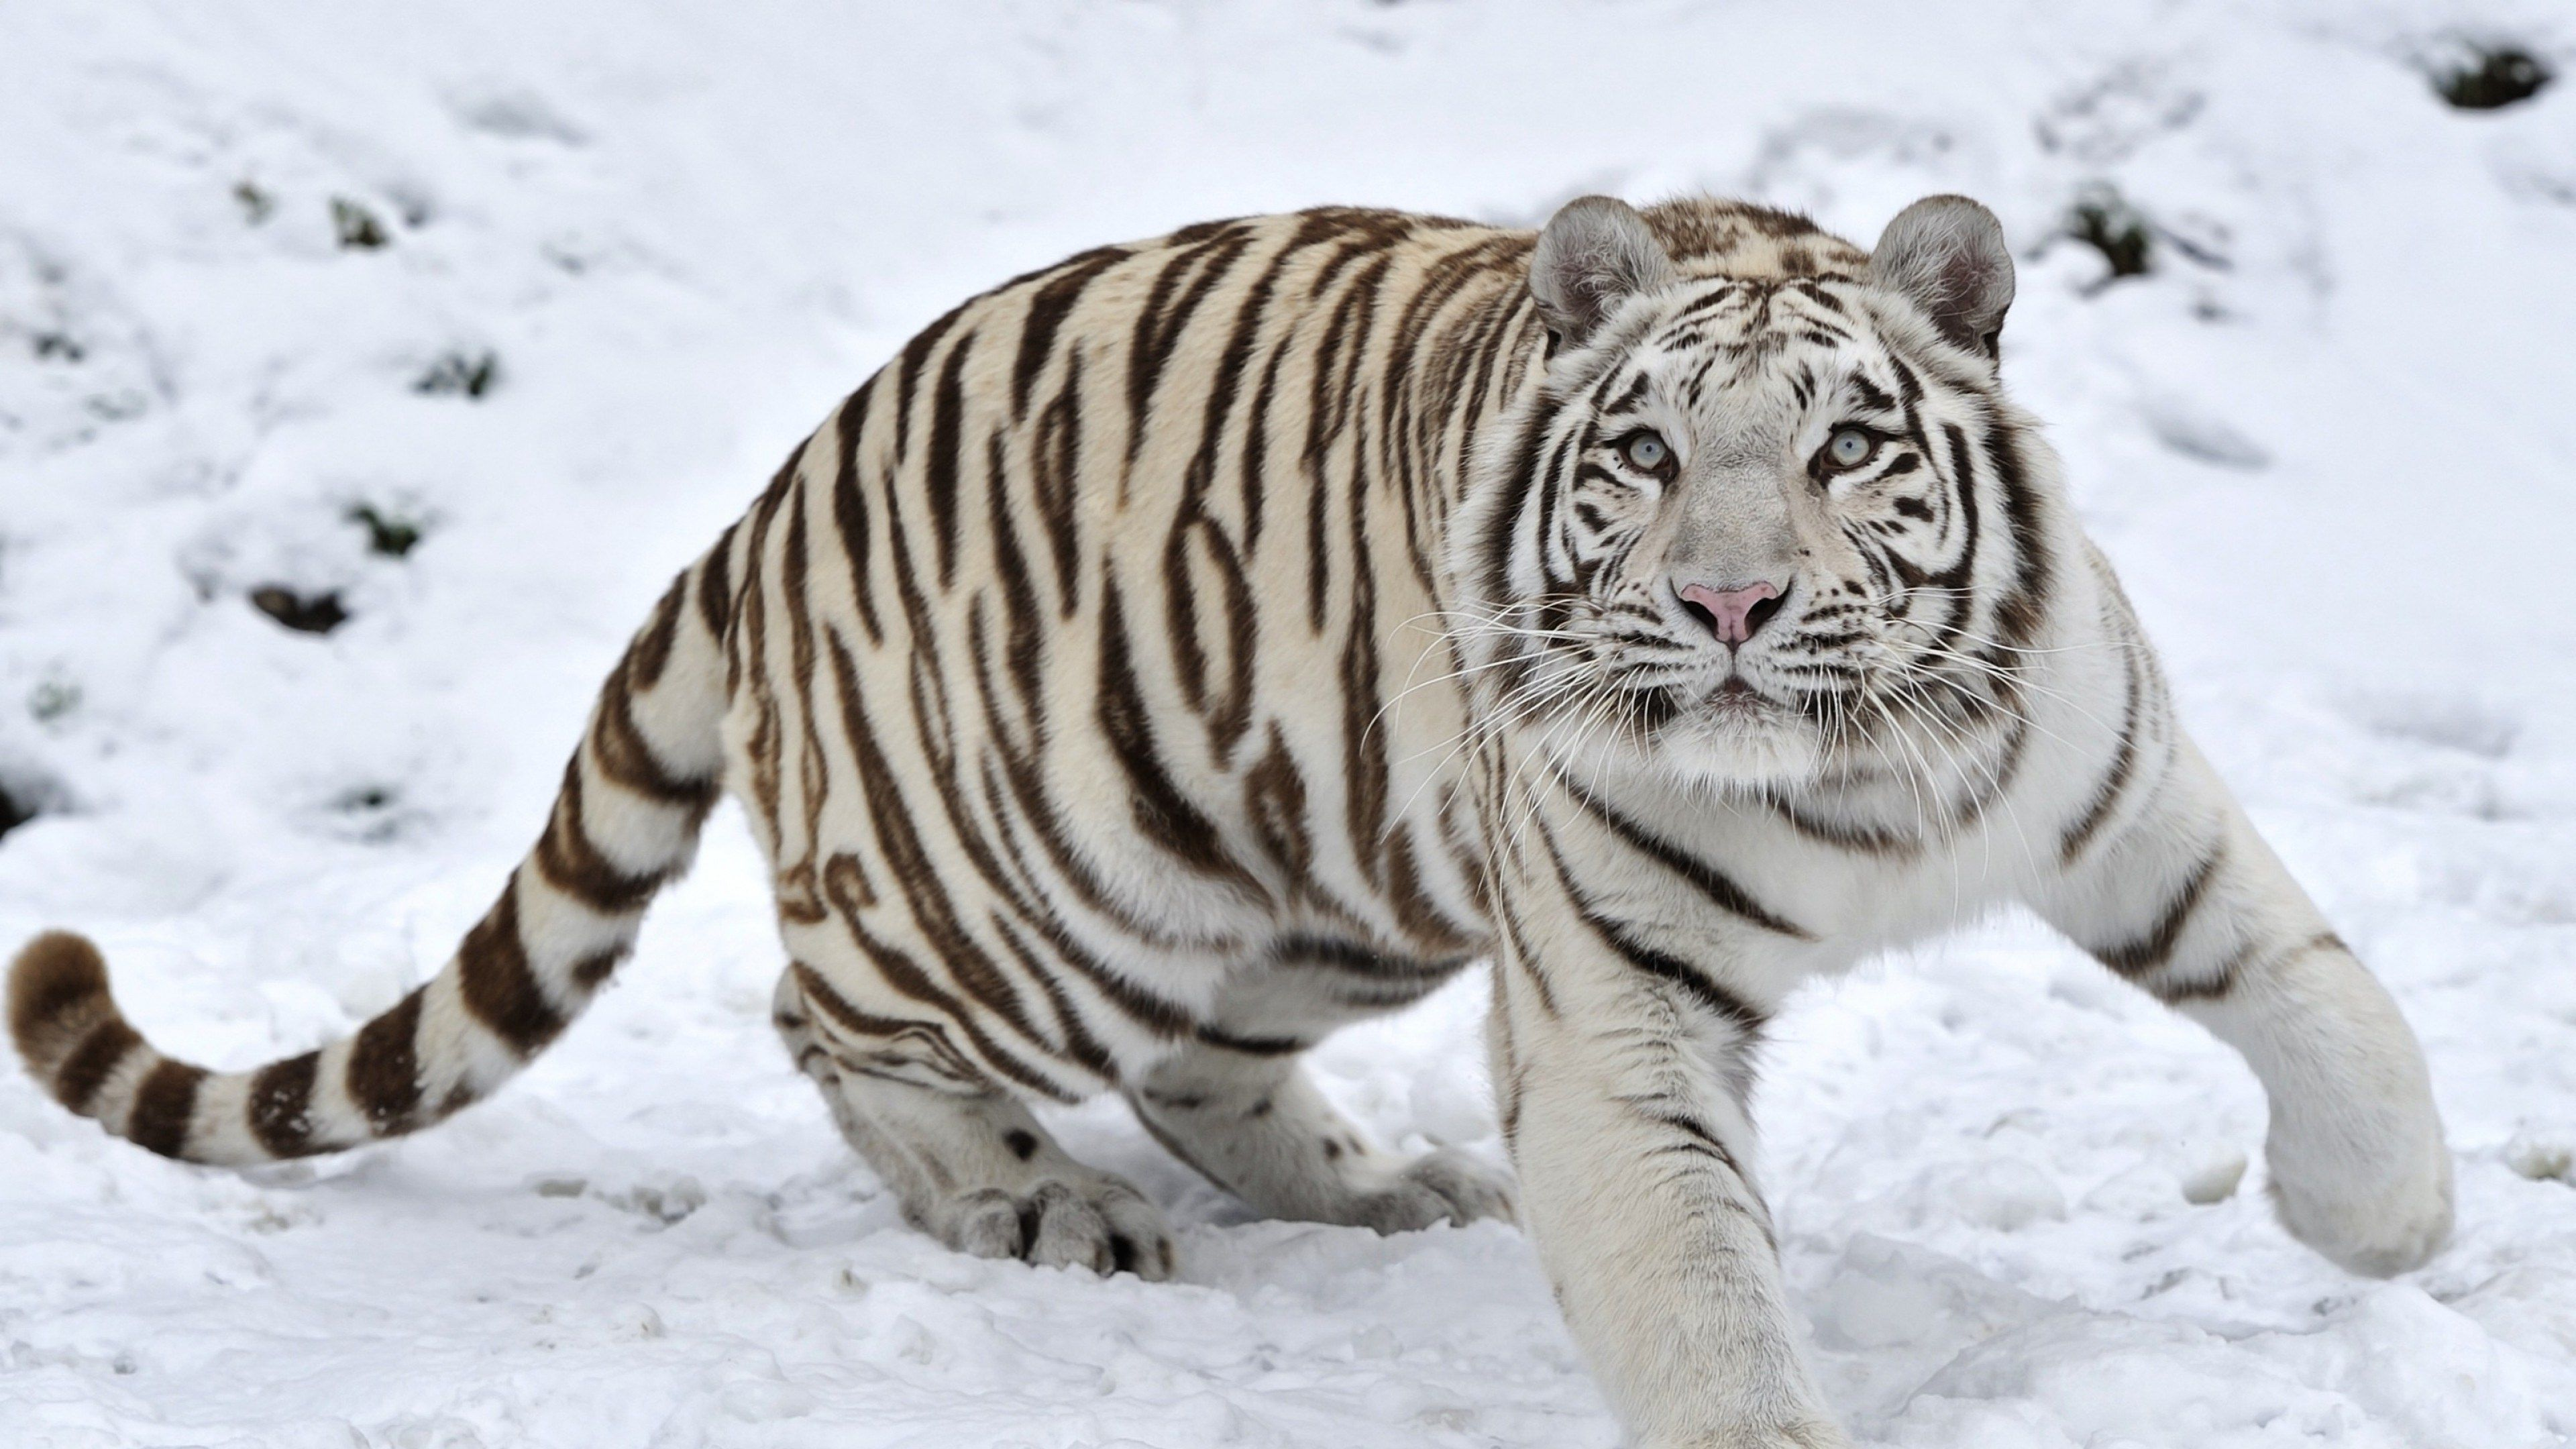 3840x2160 tiger 4k wallpaper most downloaded White tiger